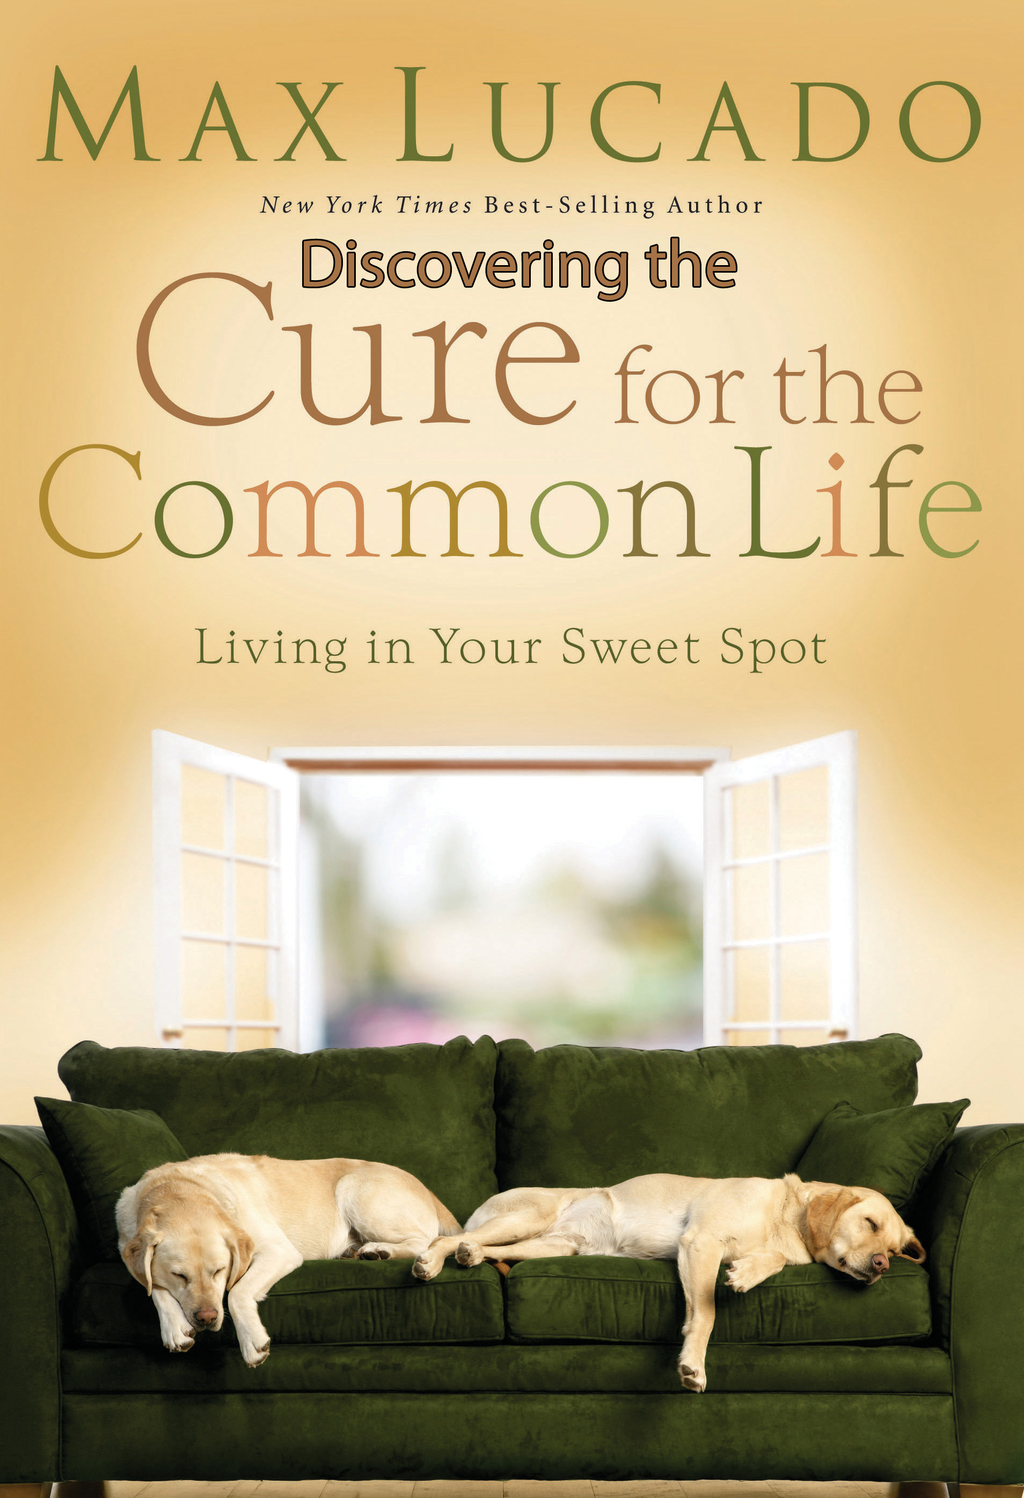 Discovering the Cure for the Common Life (Excerpt) By: Max Lucado